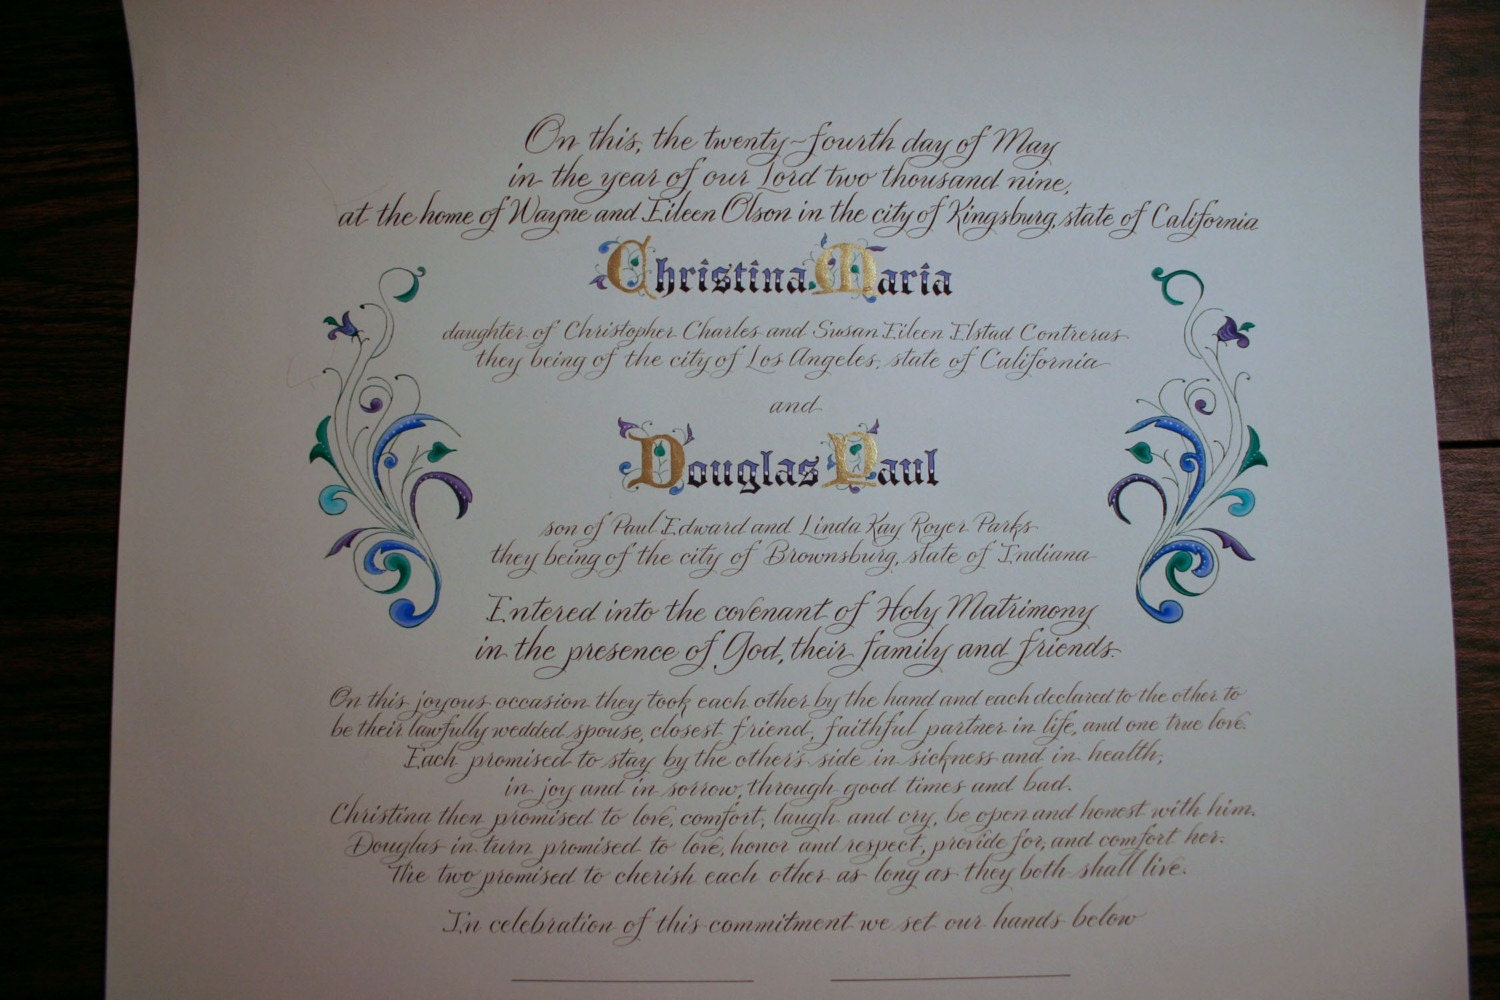 quaker marriage certificate wedding certificate Wedding Certificate Personalized Marriage Scroll Deposit Calligraphy by Hand Hand Painted